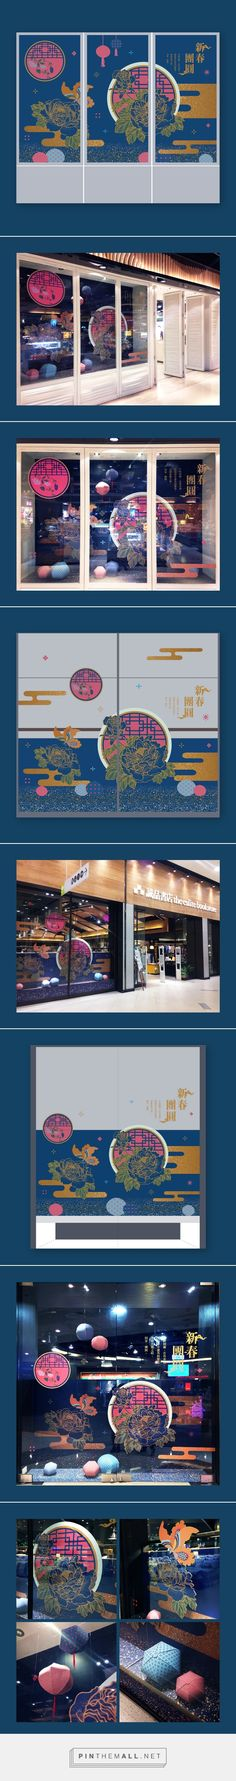 [ 誠品書店 : : 新年櫥窗 ] New Year Window Display Design on Behance - created via https://pinthemall.net